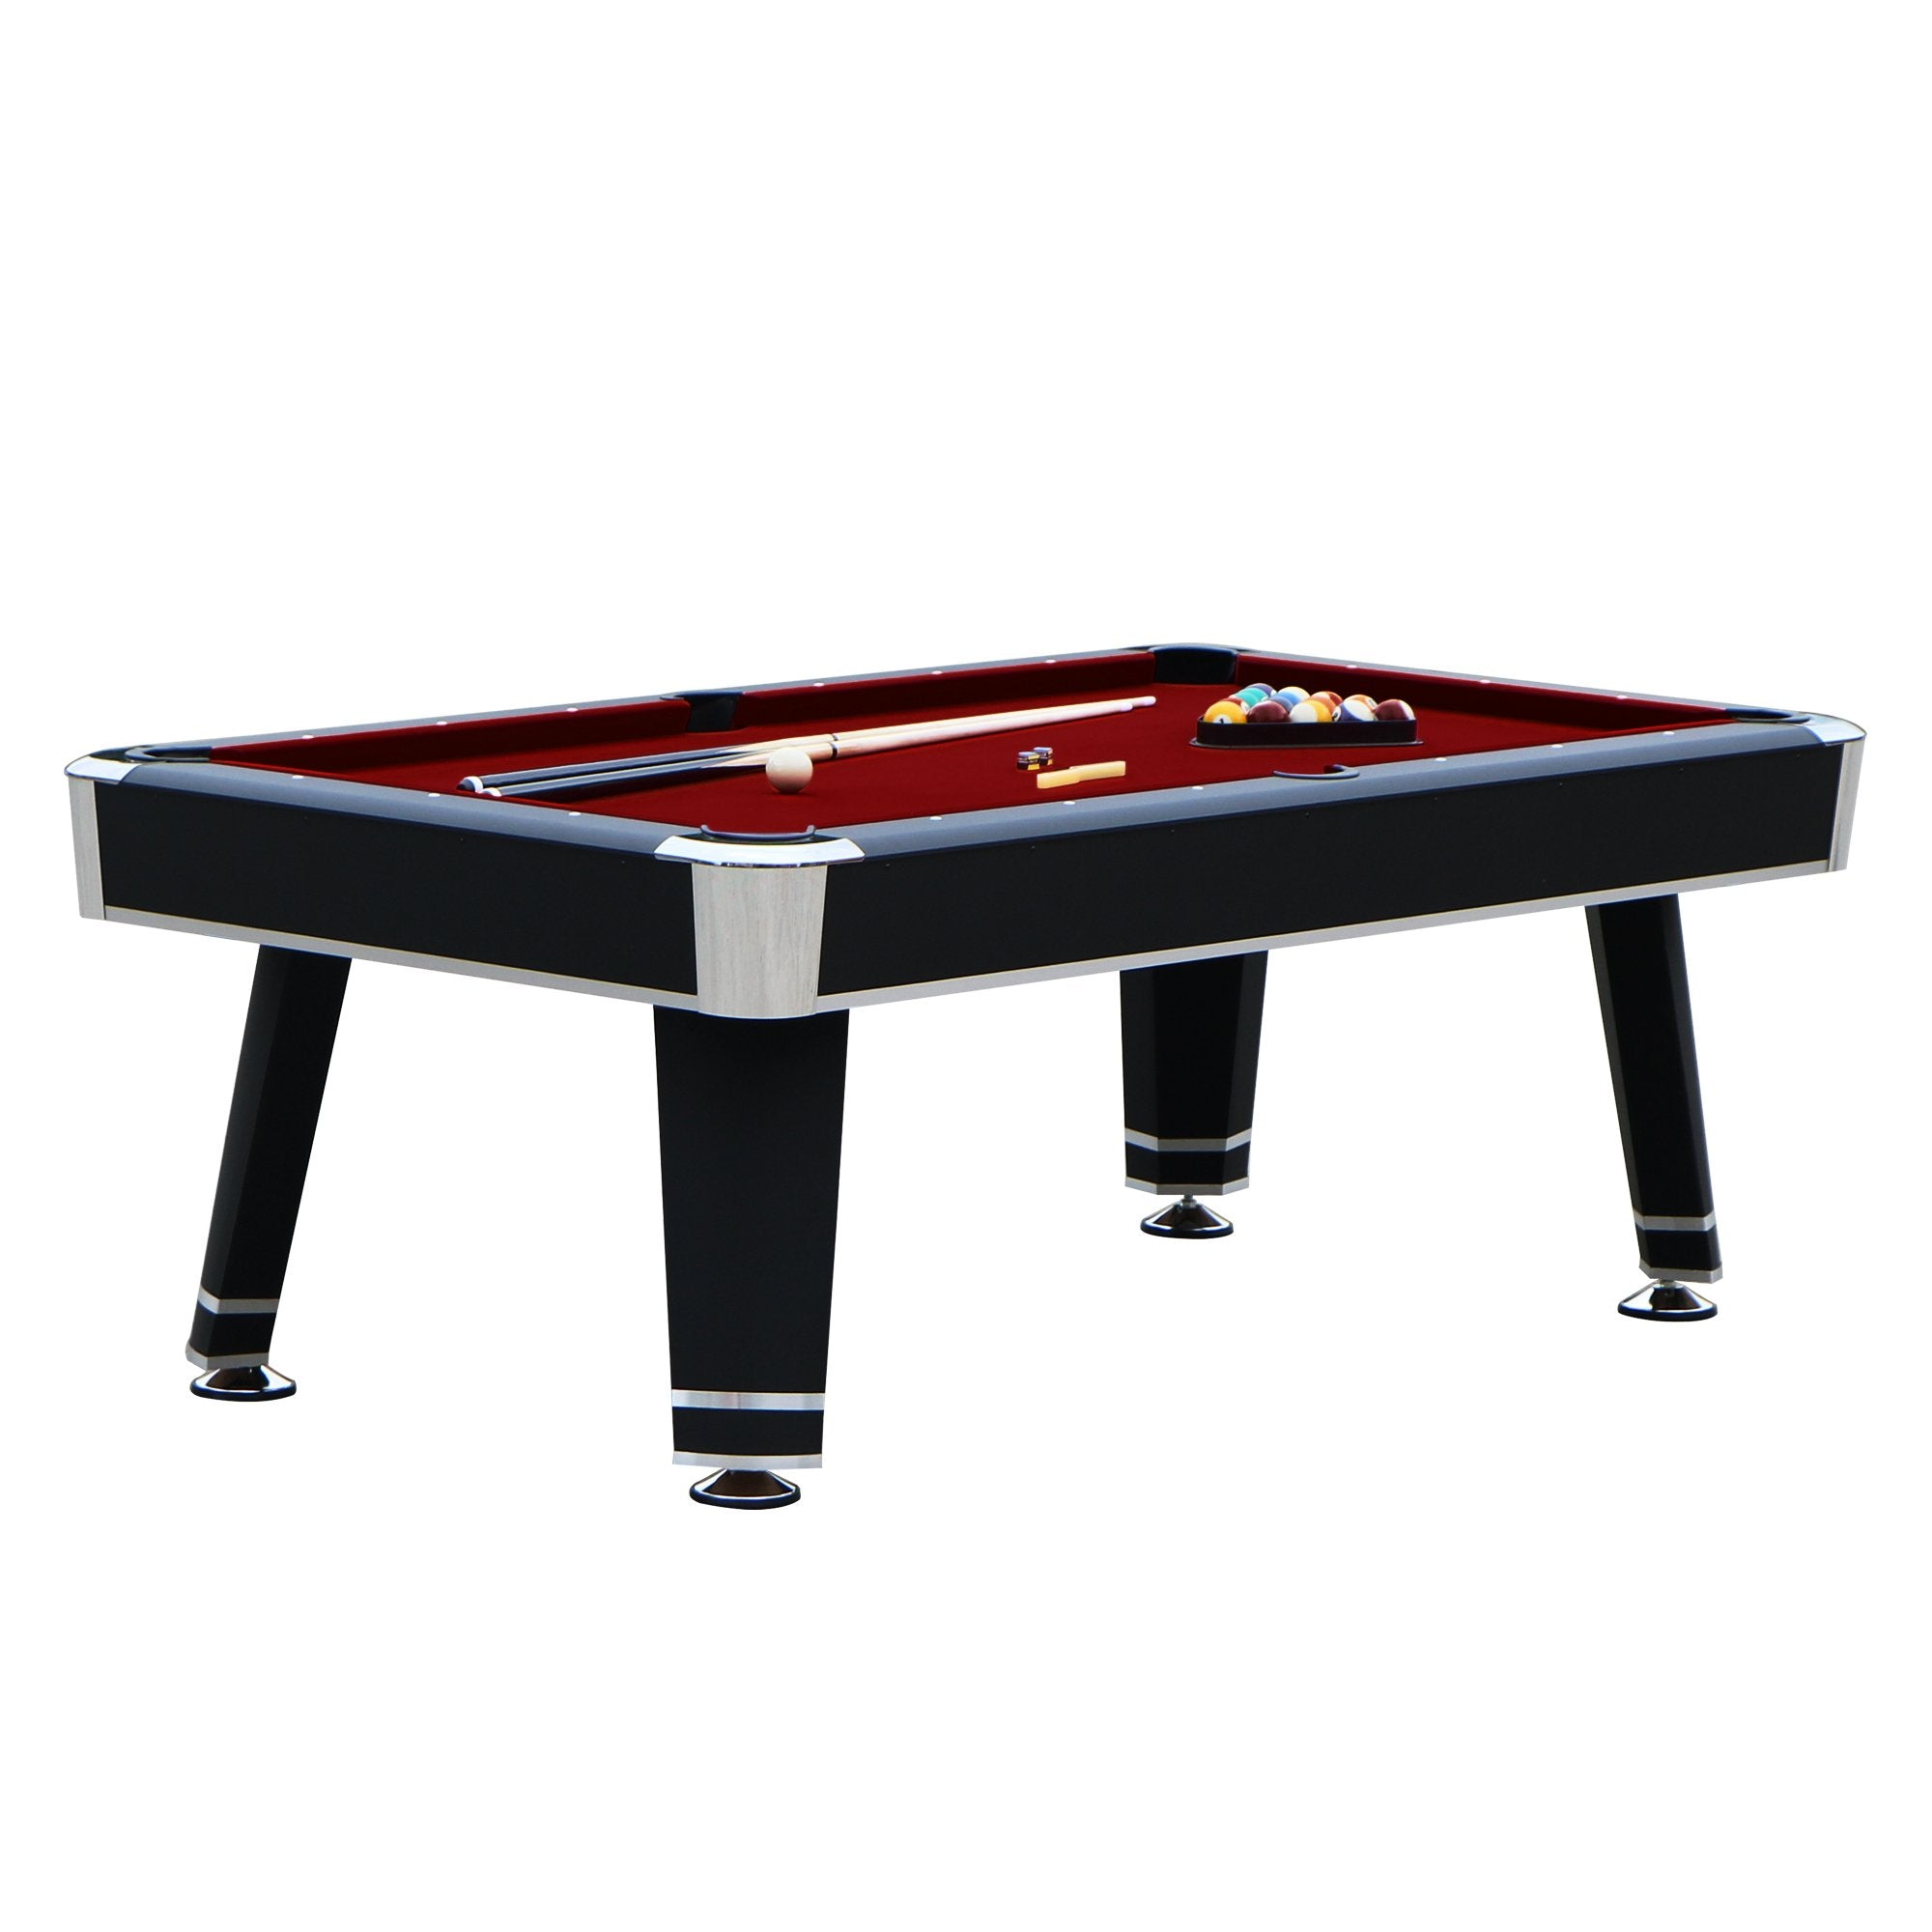 Hathaway Jupiter 7ft Pool Table - Gaming Blaze